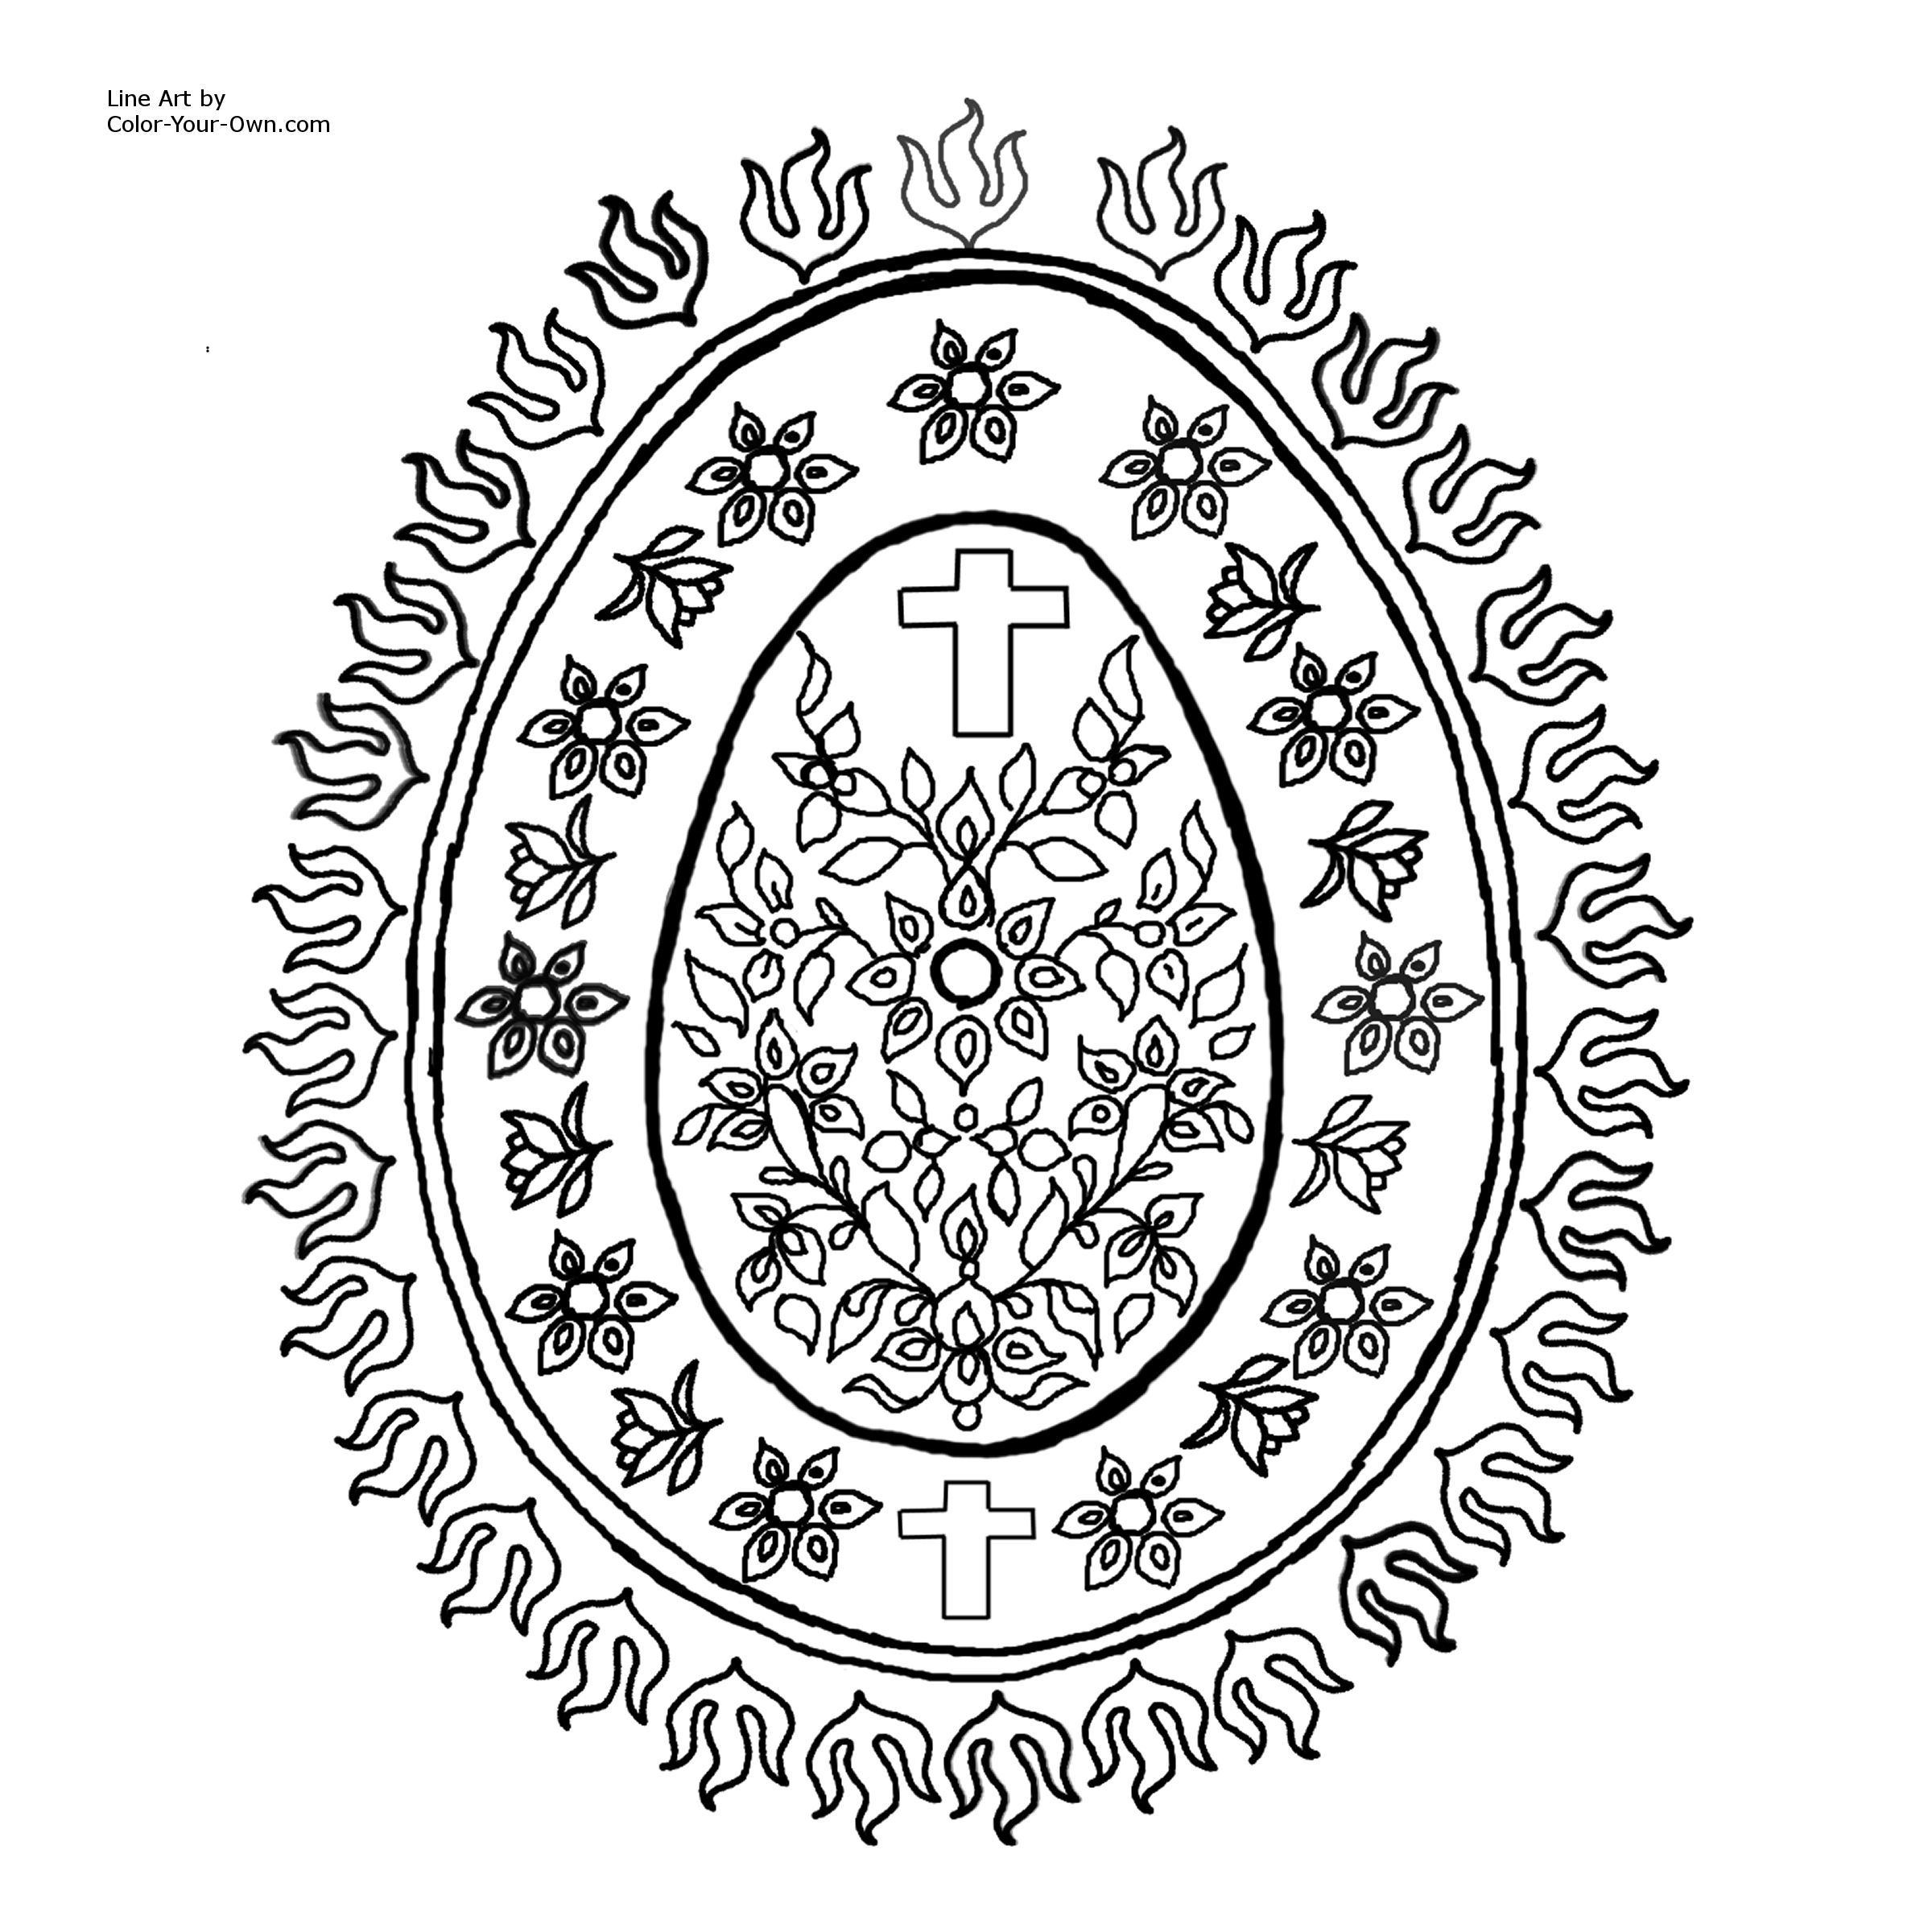 http://color-your-own.com/printable_coloring_pages/eggfullydecoratedxtian.jpg